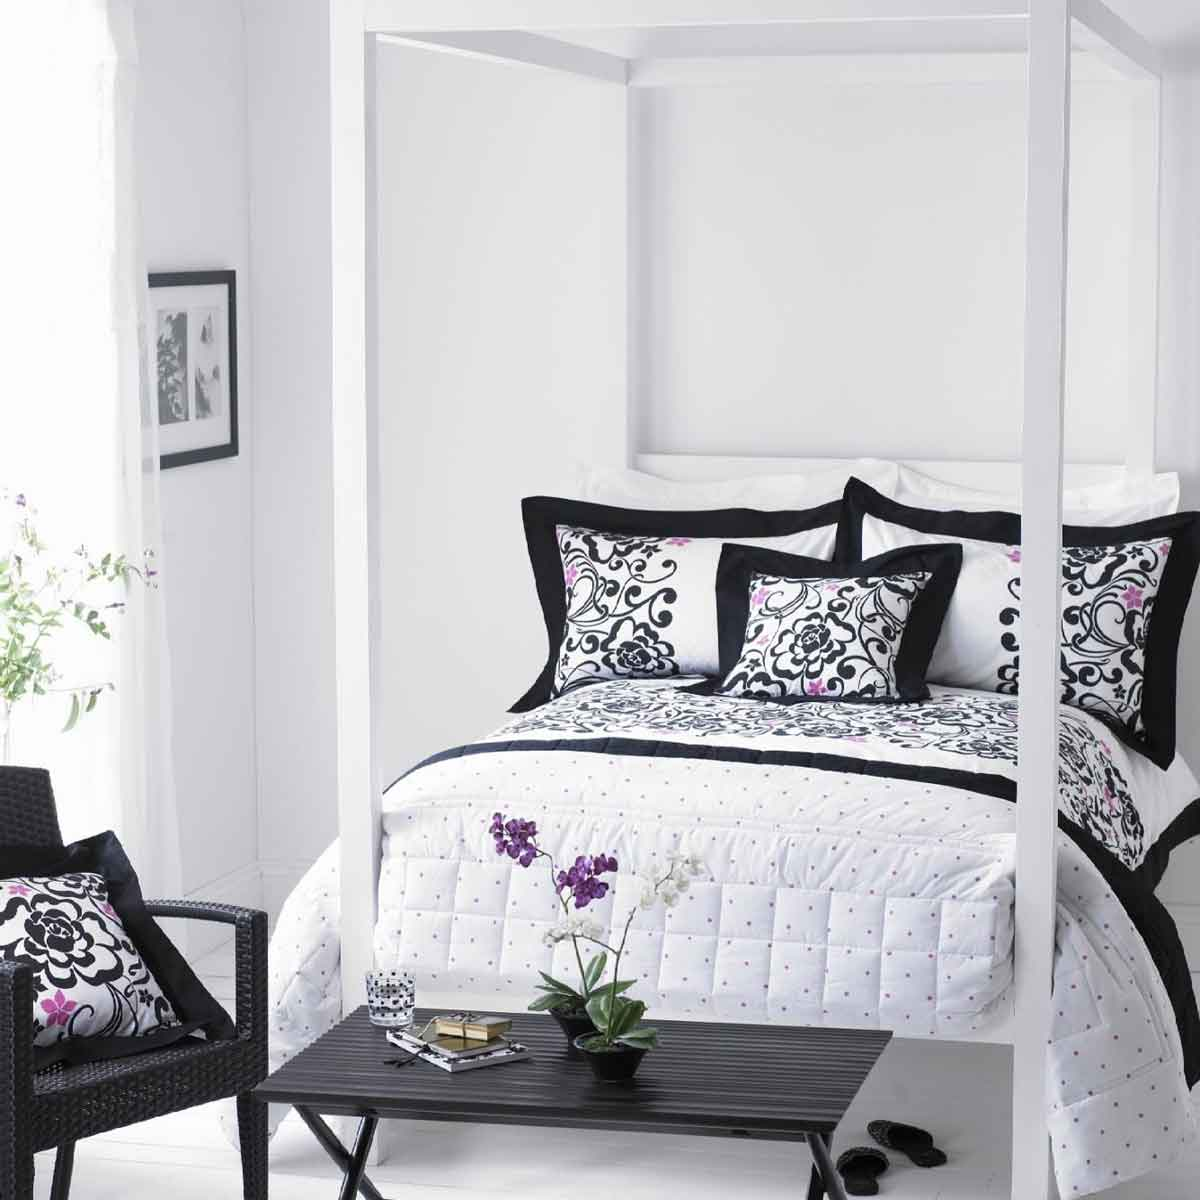 Black white grey bedroom 2017 grasscloth wallpaper for Black white and grey room decor